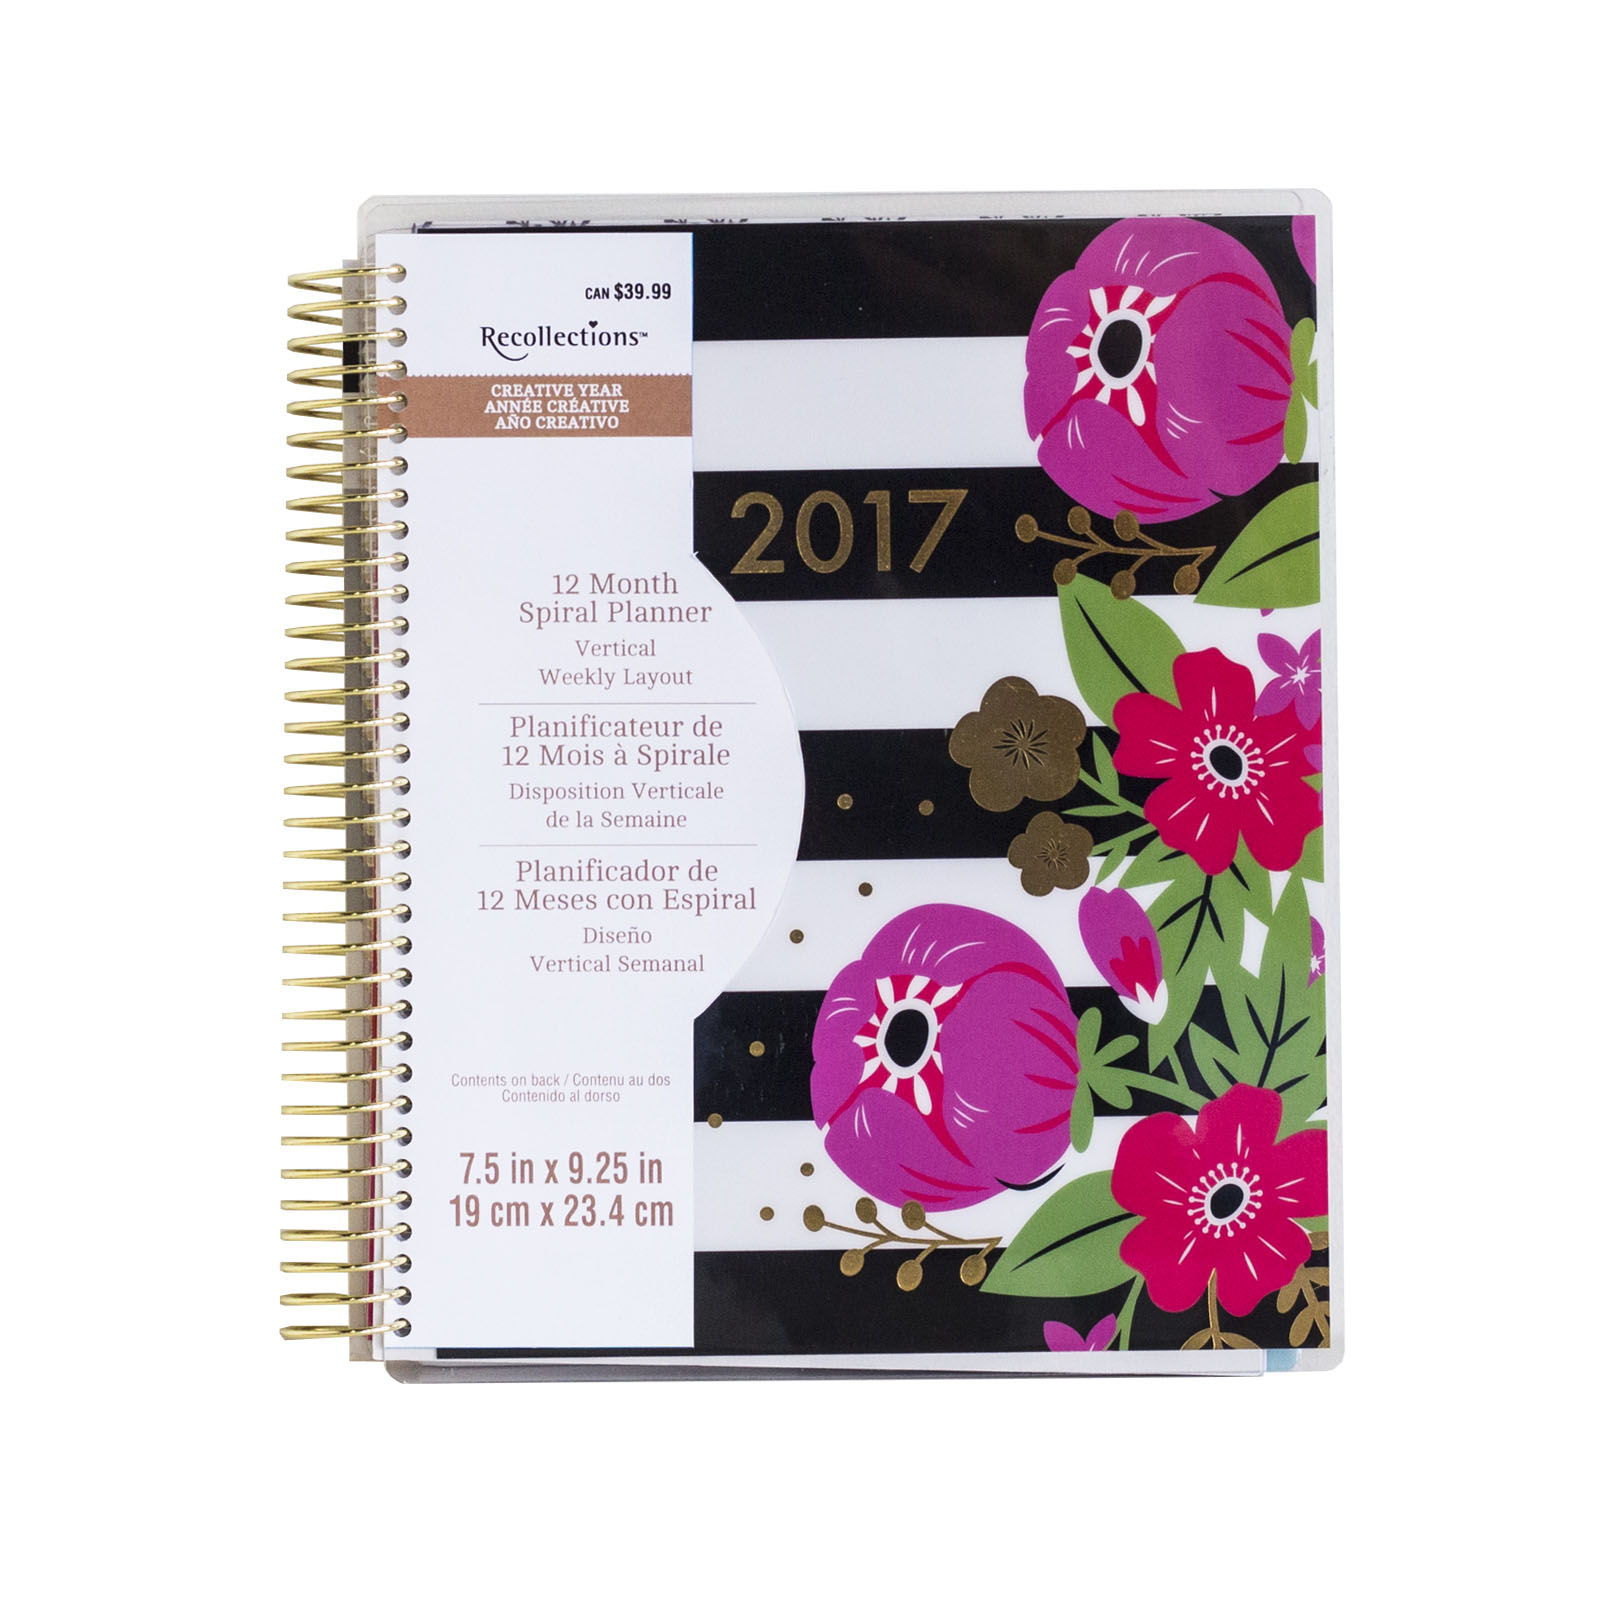 Image result for Creative Year Family Spiral Planner By Recollections